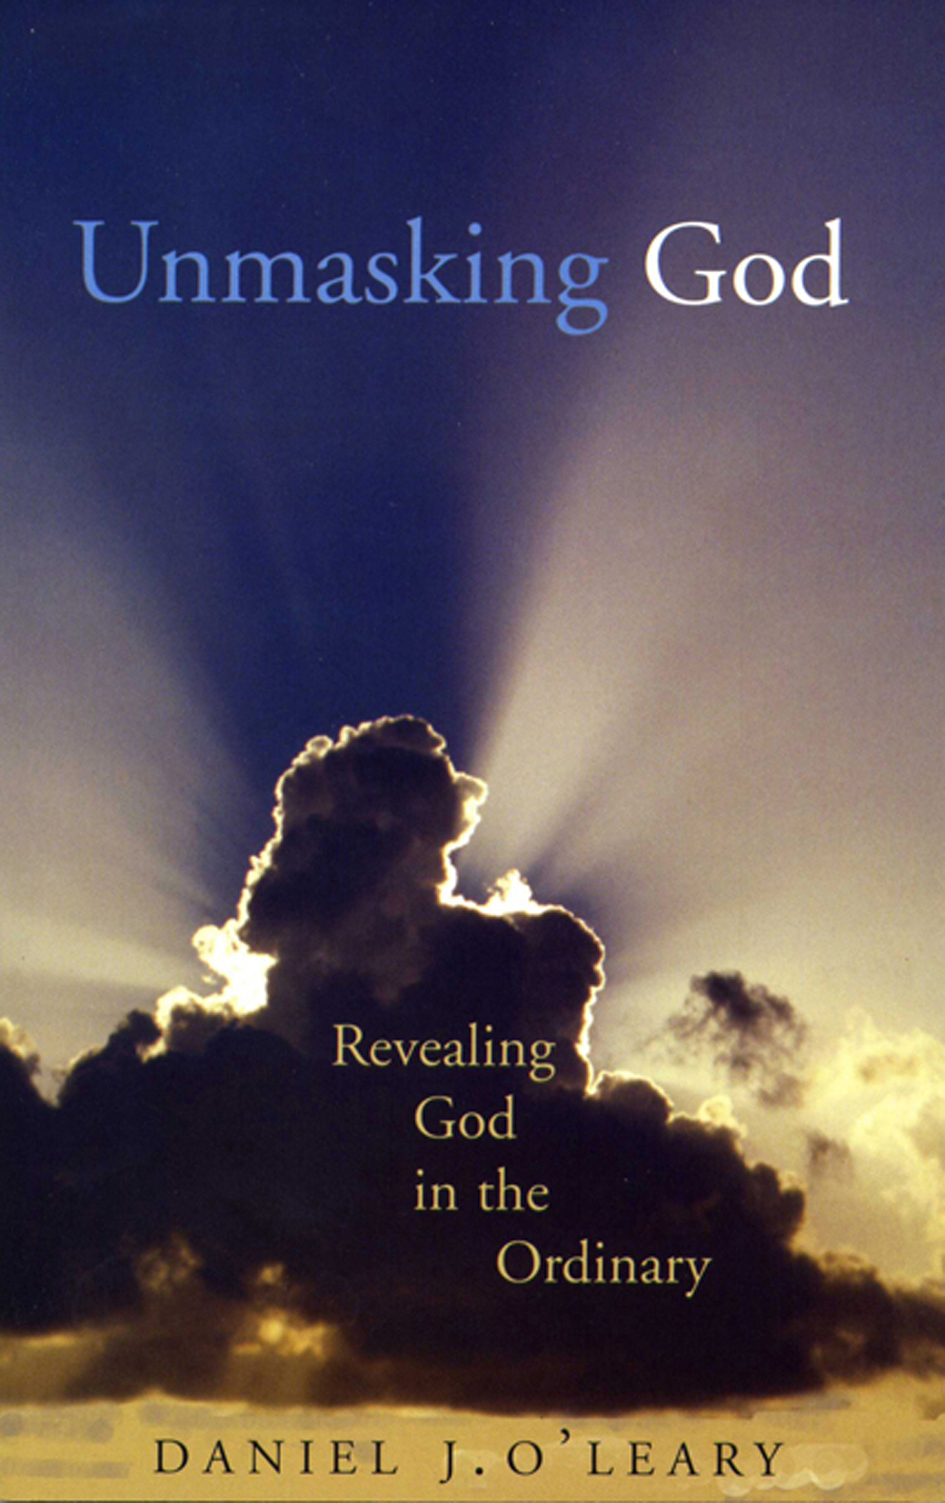 Unmasking God: Revealing God in the Ordinary